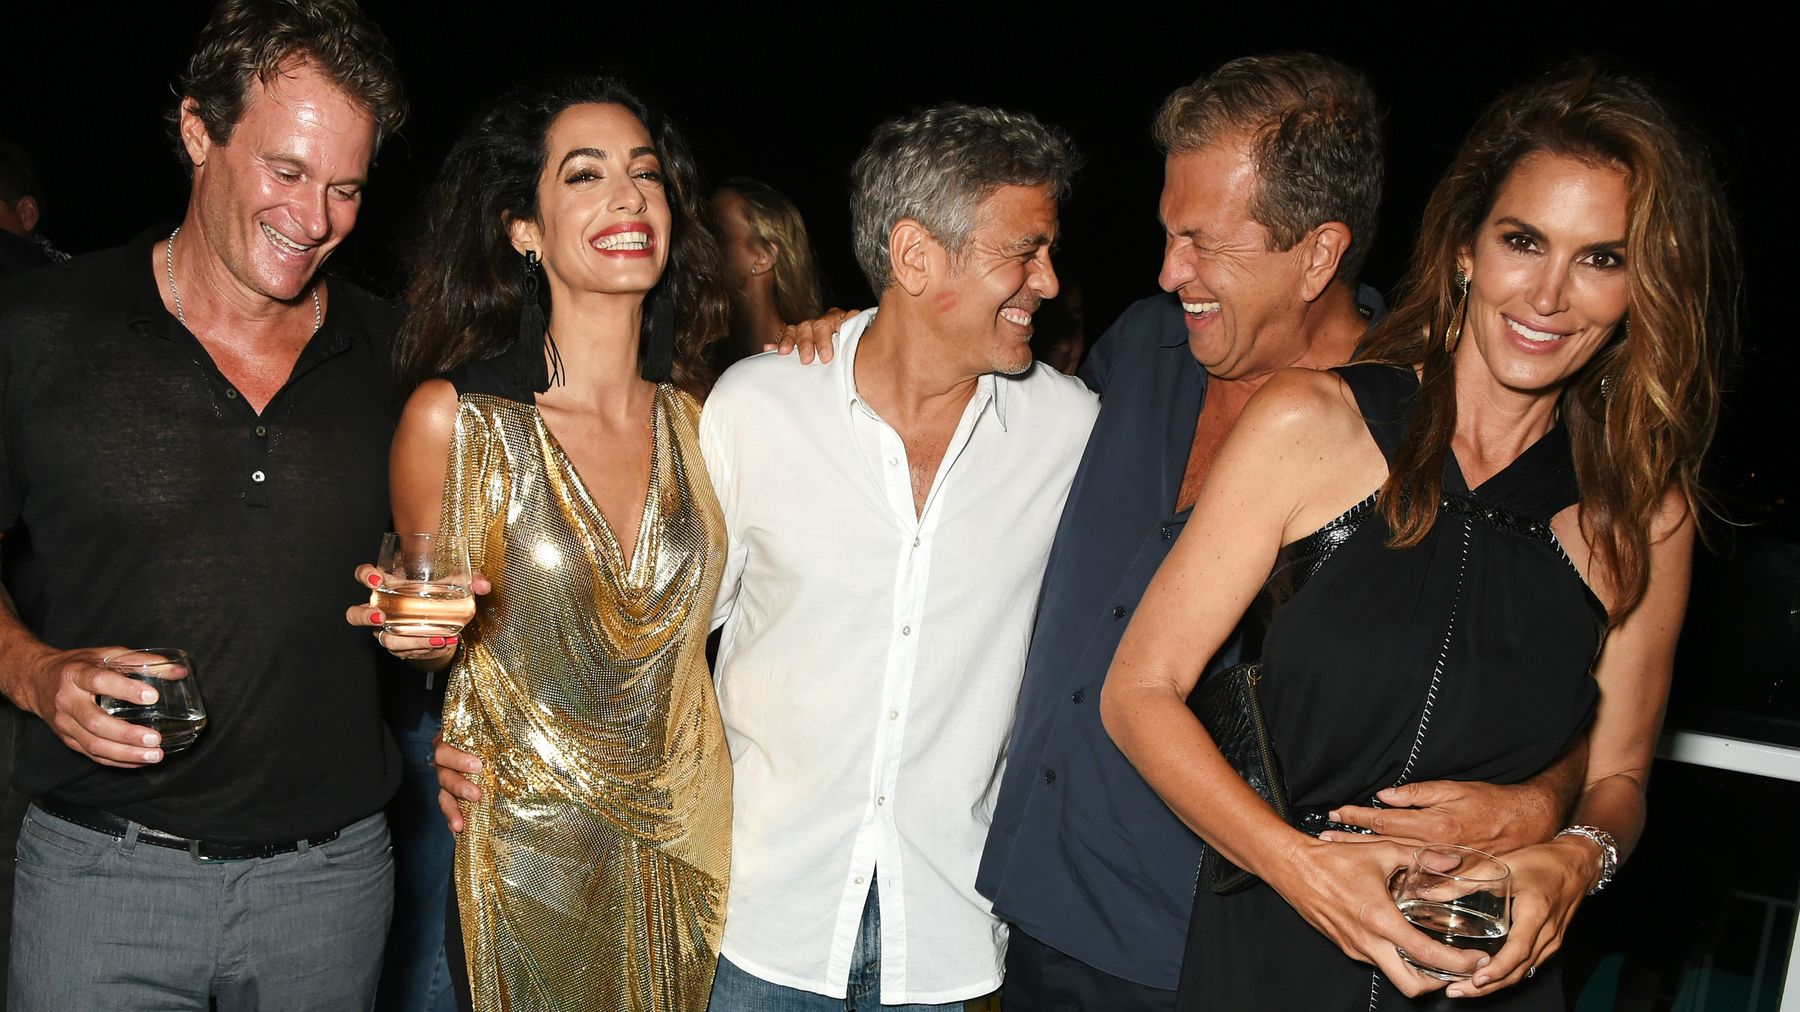 Cindy Crawford Responds To Amal Clooney's Baby News In The